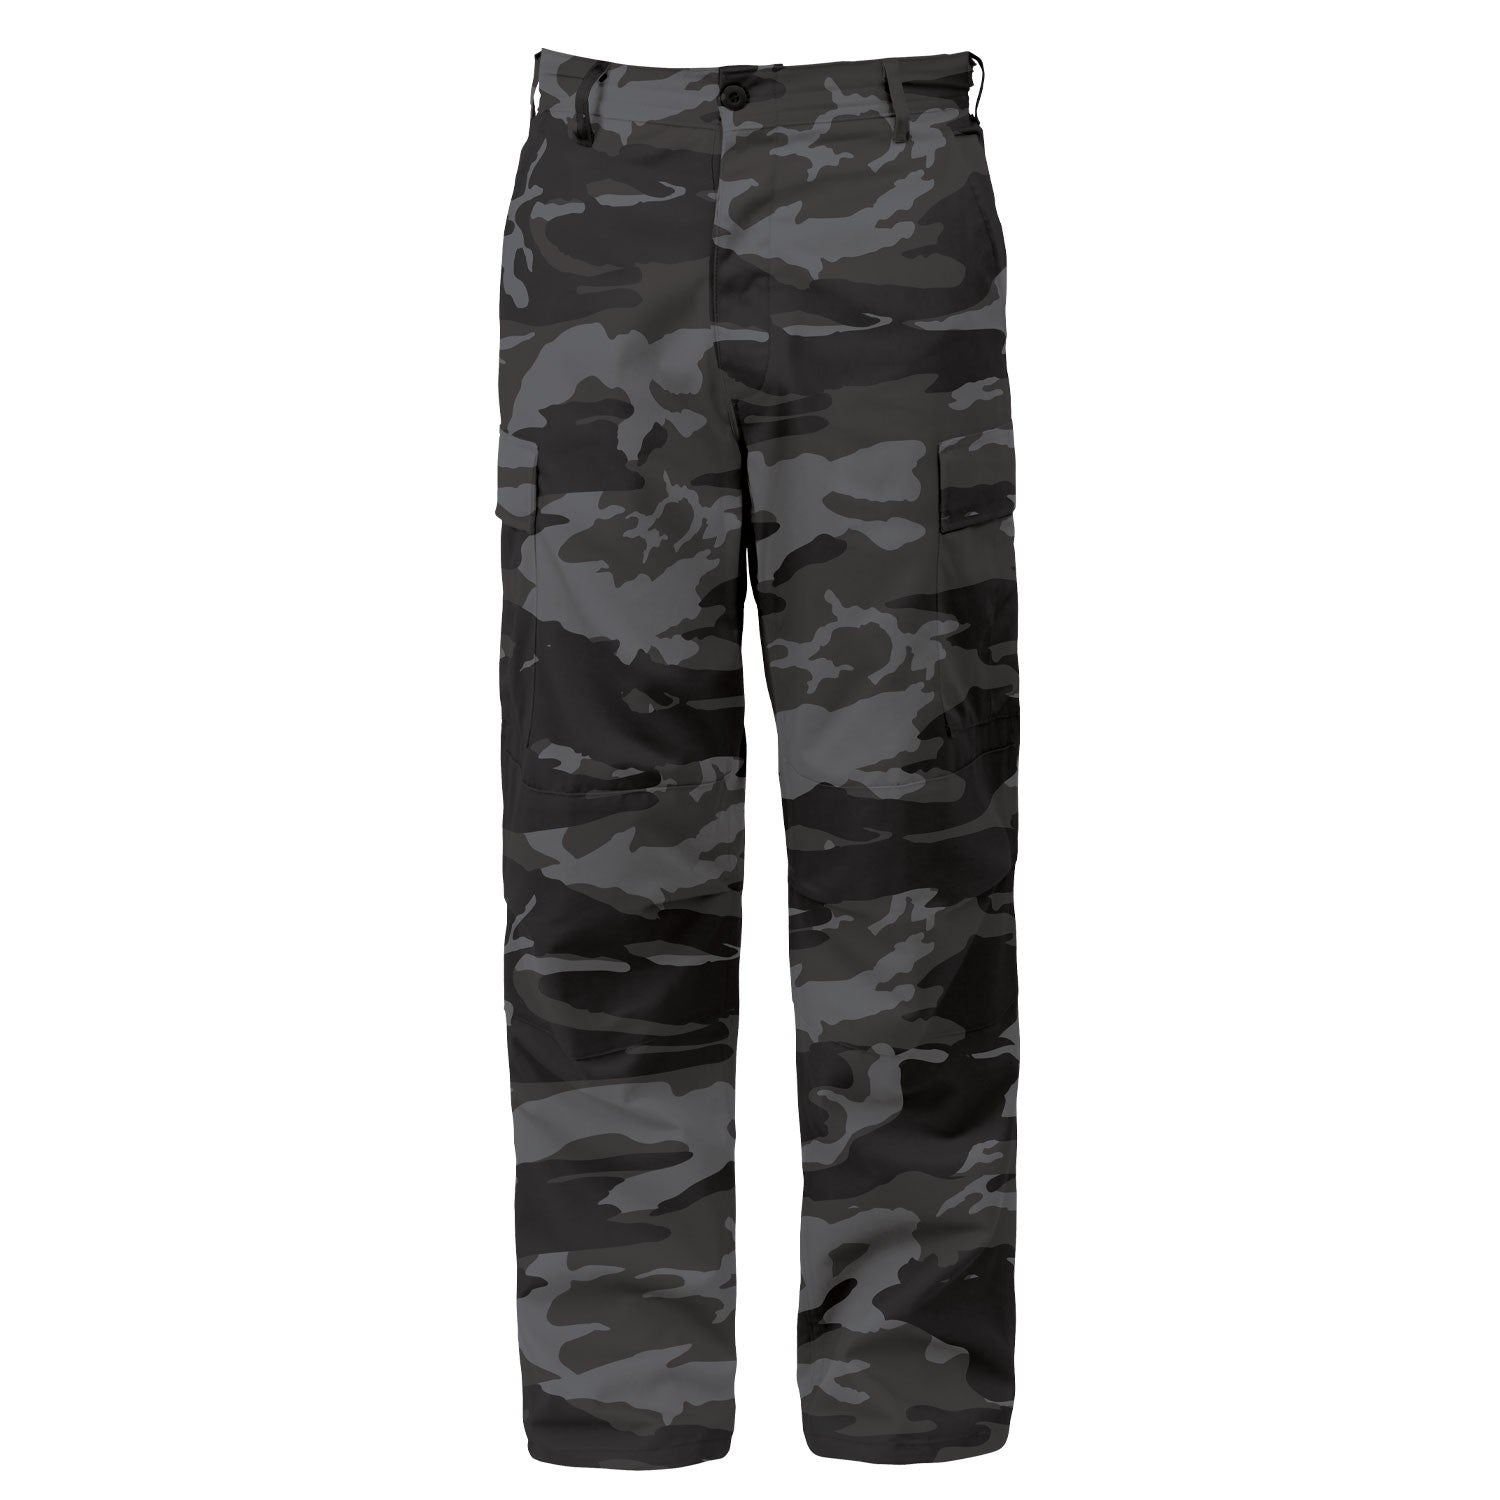 Black Camouflage BDU Pants